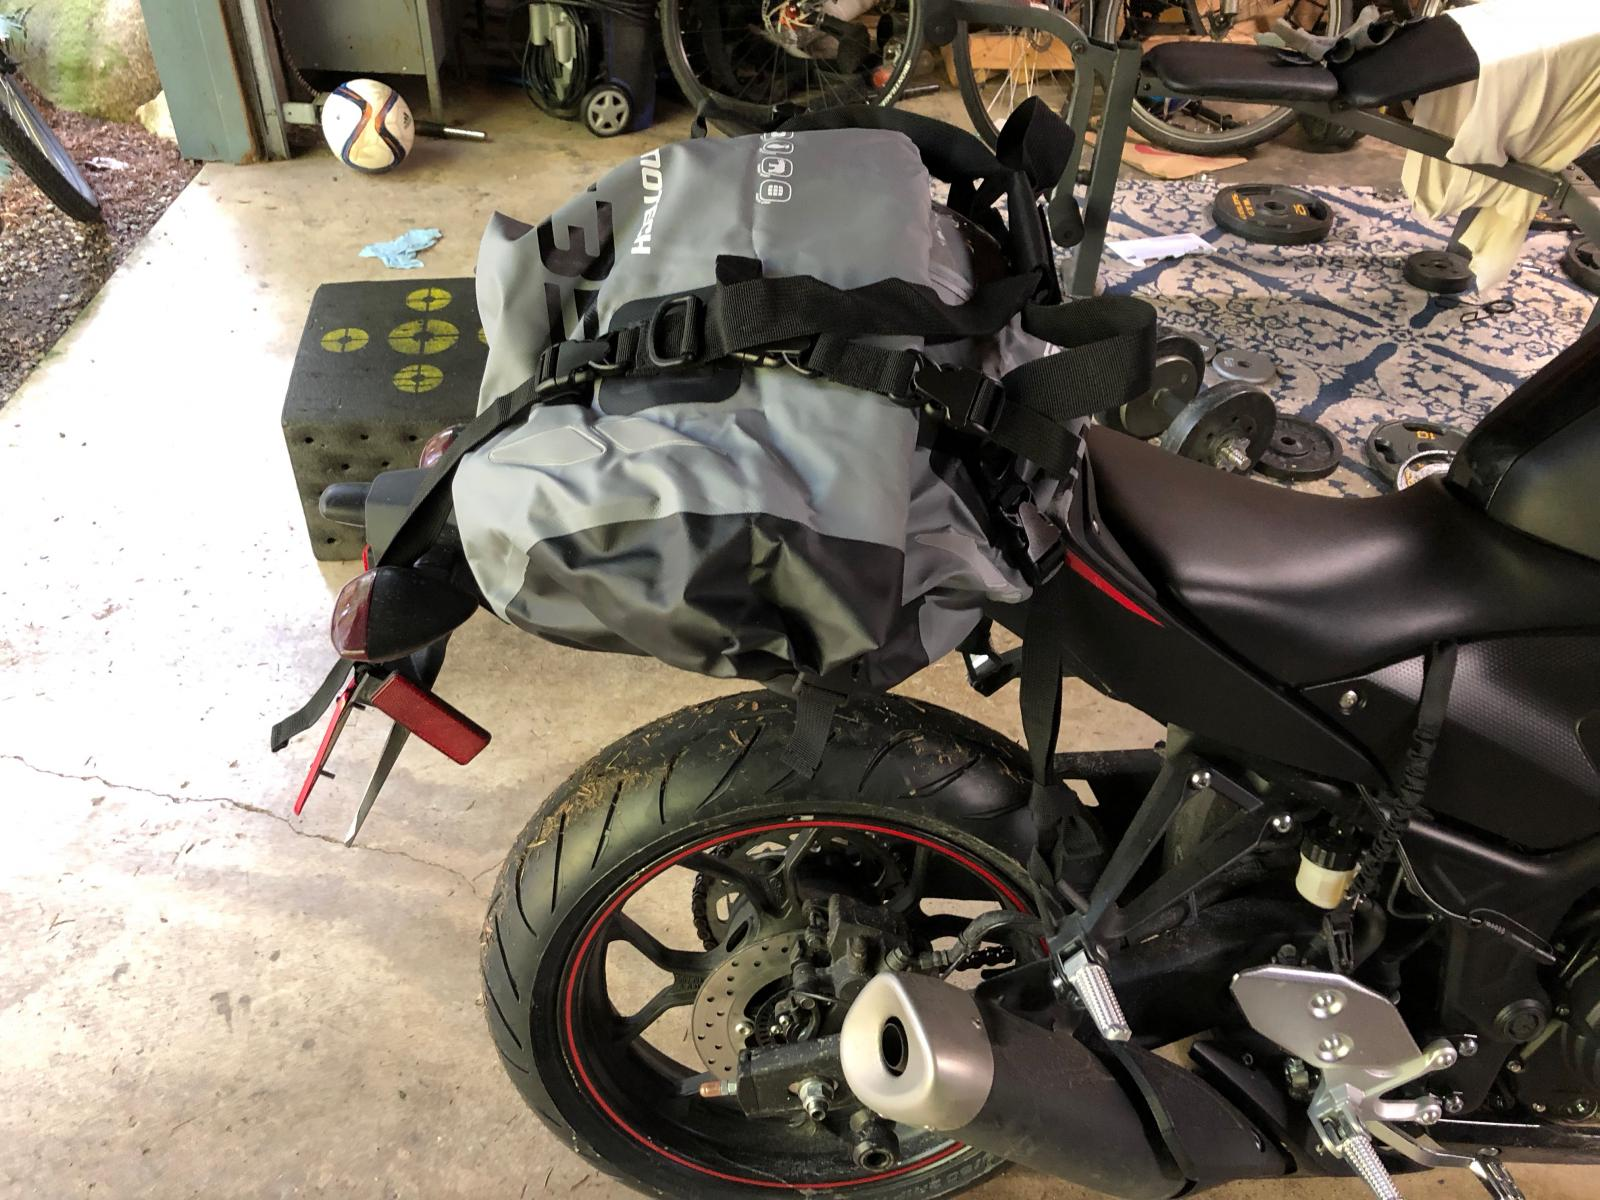 New SW Motech 350 dry bag is awesome! - Yamaha R3 Forum